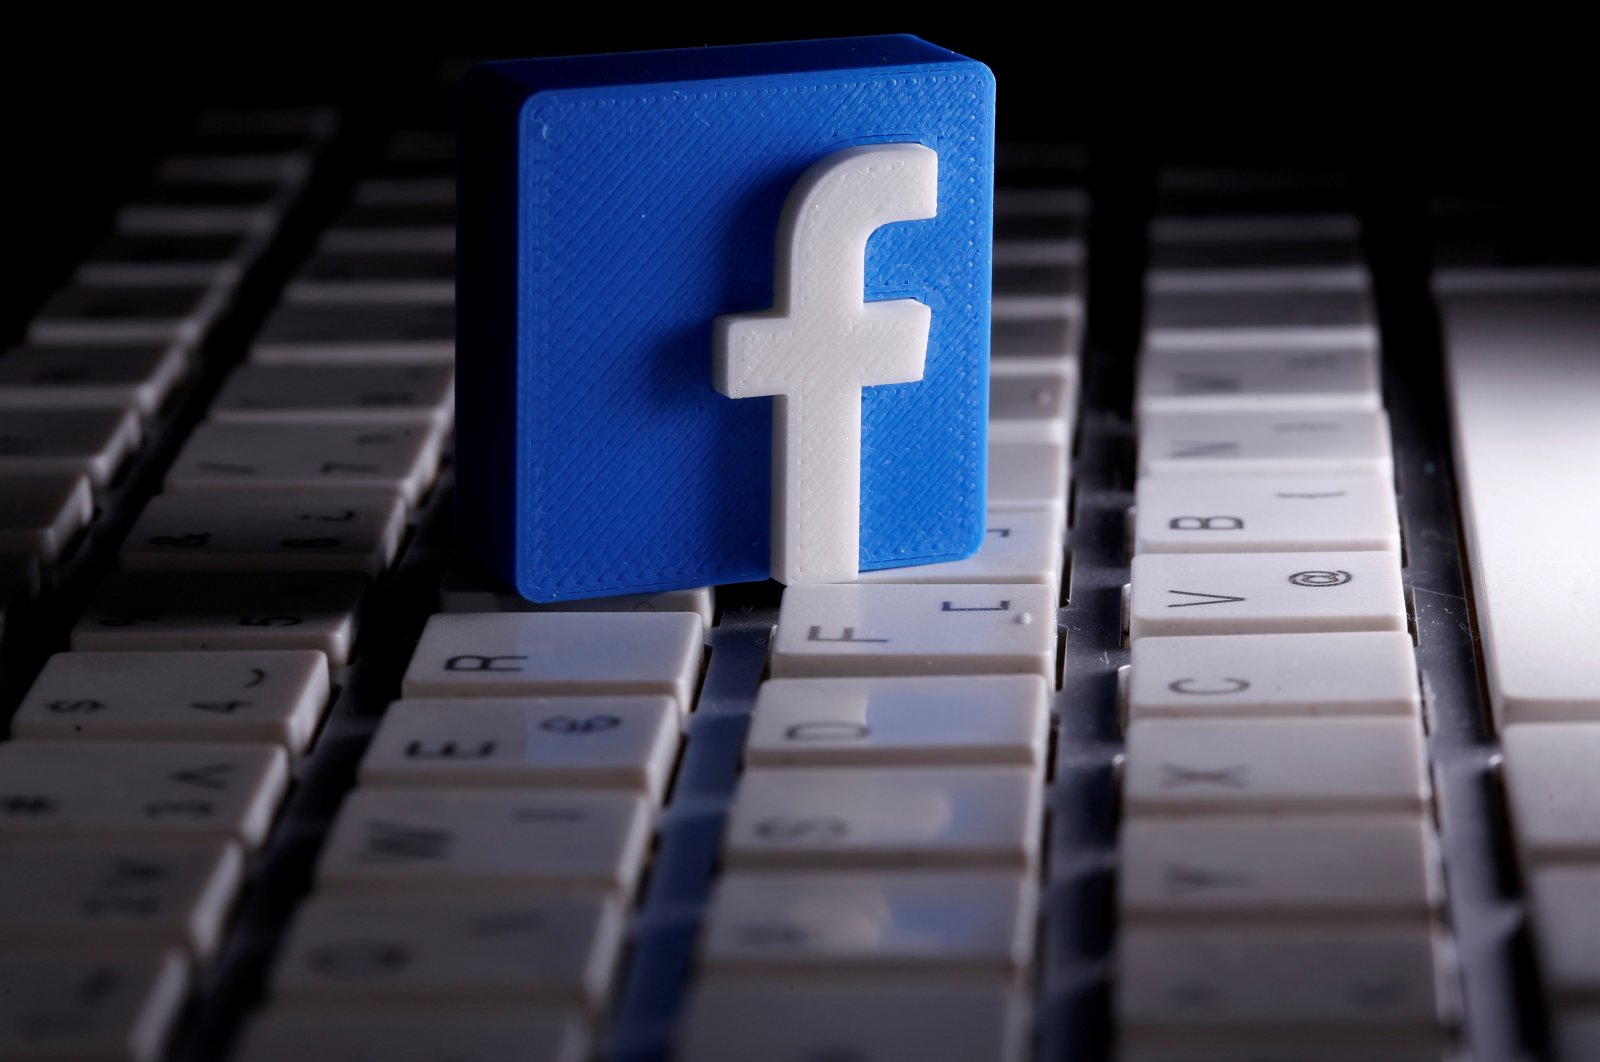 A 3D-printed Facebook logo is seen placed on a keyboard in this illustration, March 25, 2020. (Reuters Photo)